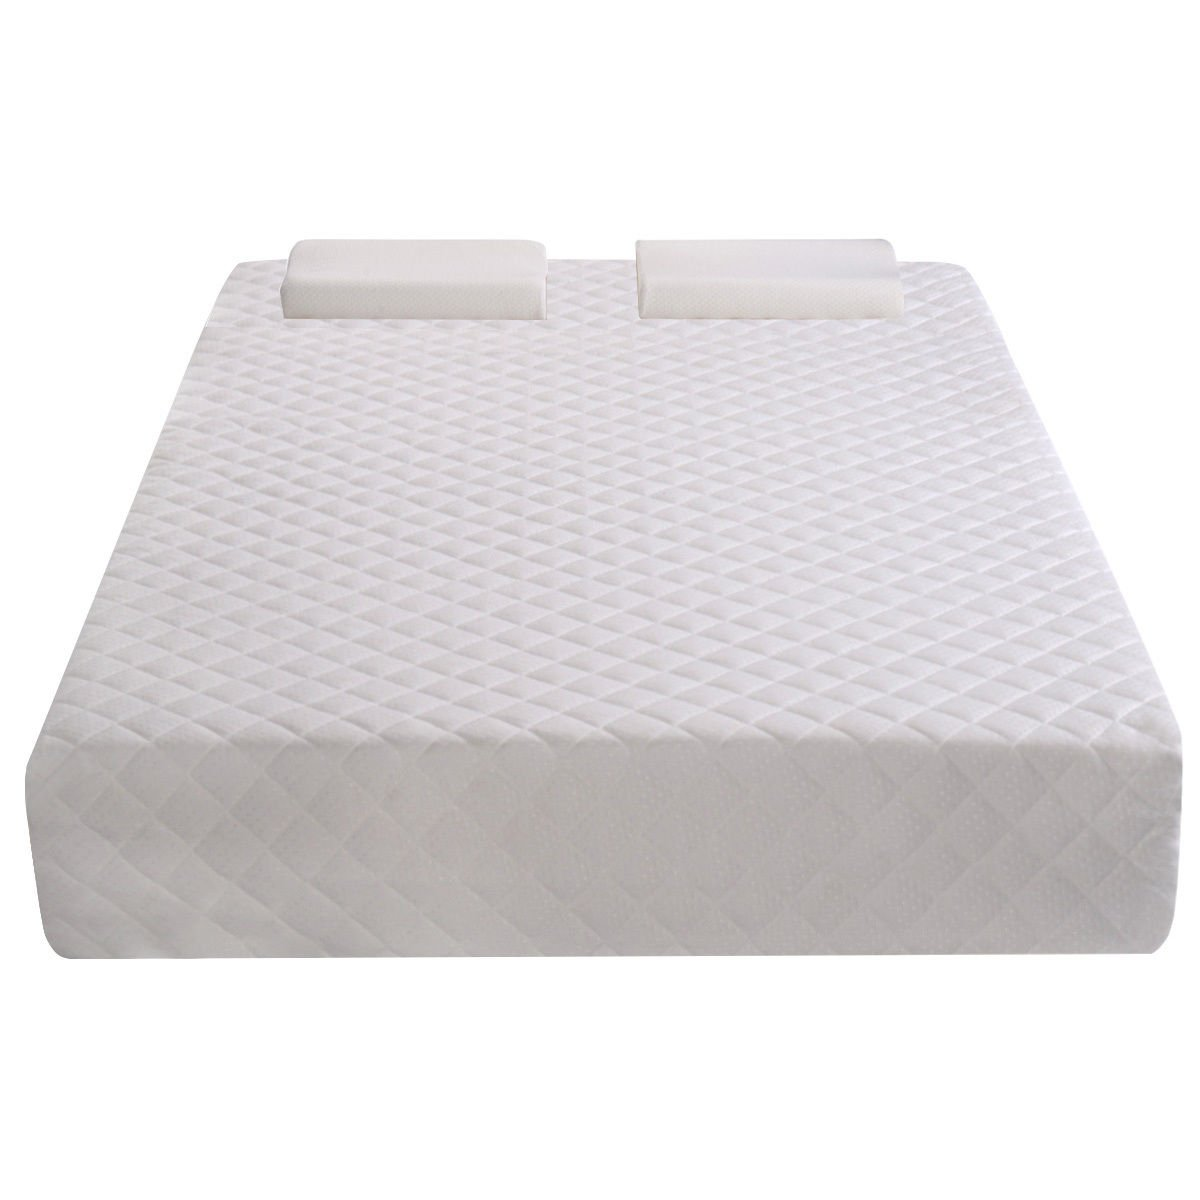 "Adumly Queen Size 10"" Memory Foam Mattress Pad Bed Topper 2 FREE Pillows Relieving pressure"